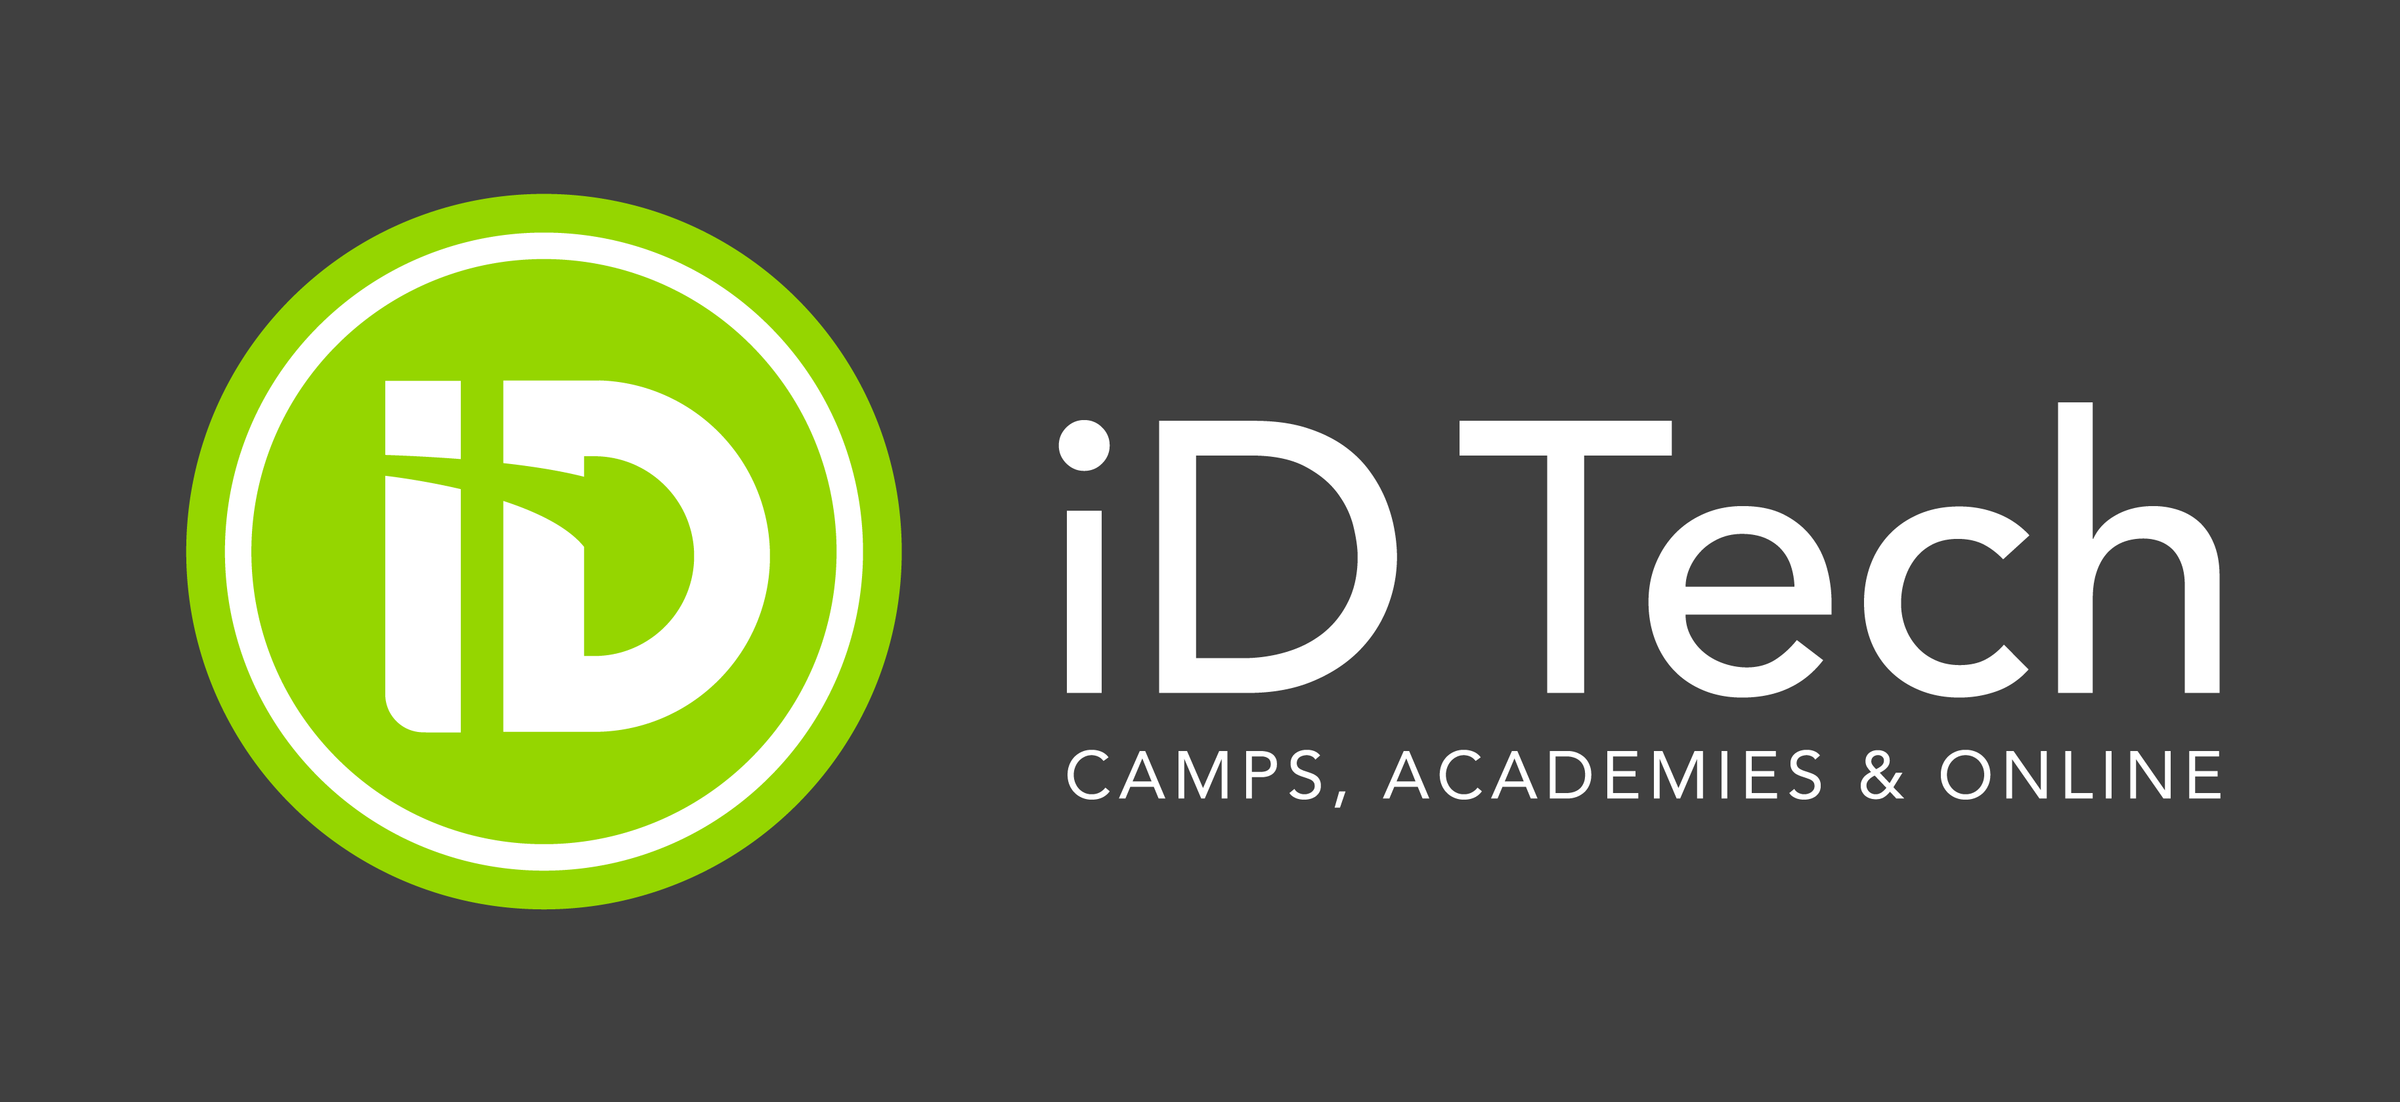 iD Tech Camps: #1 in STEM Education - Held at Marymount Manhattan College